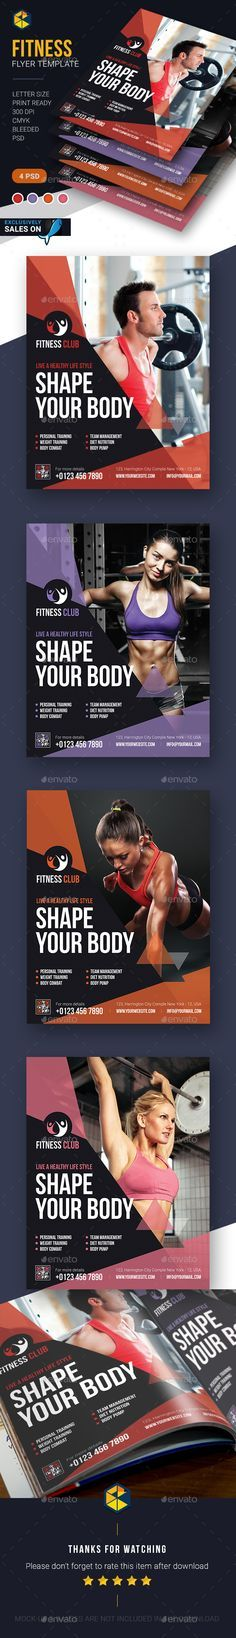 "Fitness Flyer Template PSD <a class=""pintag"" href=""/explore/design/"" title=""#design explore Pinterest"">#design</a> Download: <a href=""http://graphicriver.net/item/fitness-flyer-template/14327228?ref=ksioks"" rel=""nofollow"" target=""_blank"">graphicriver.net/...</a>"